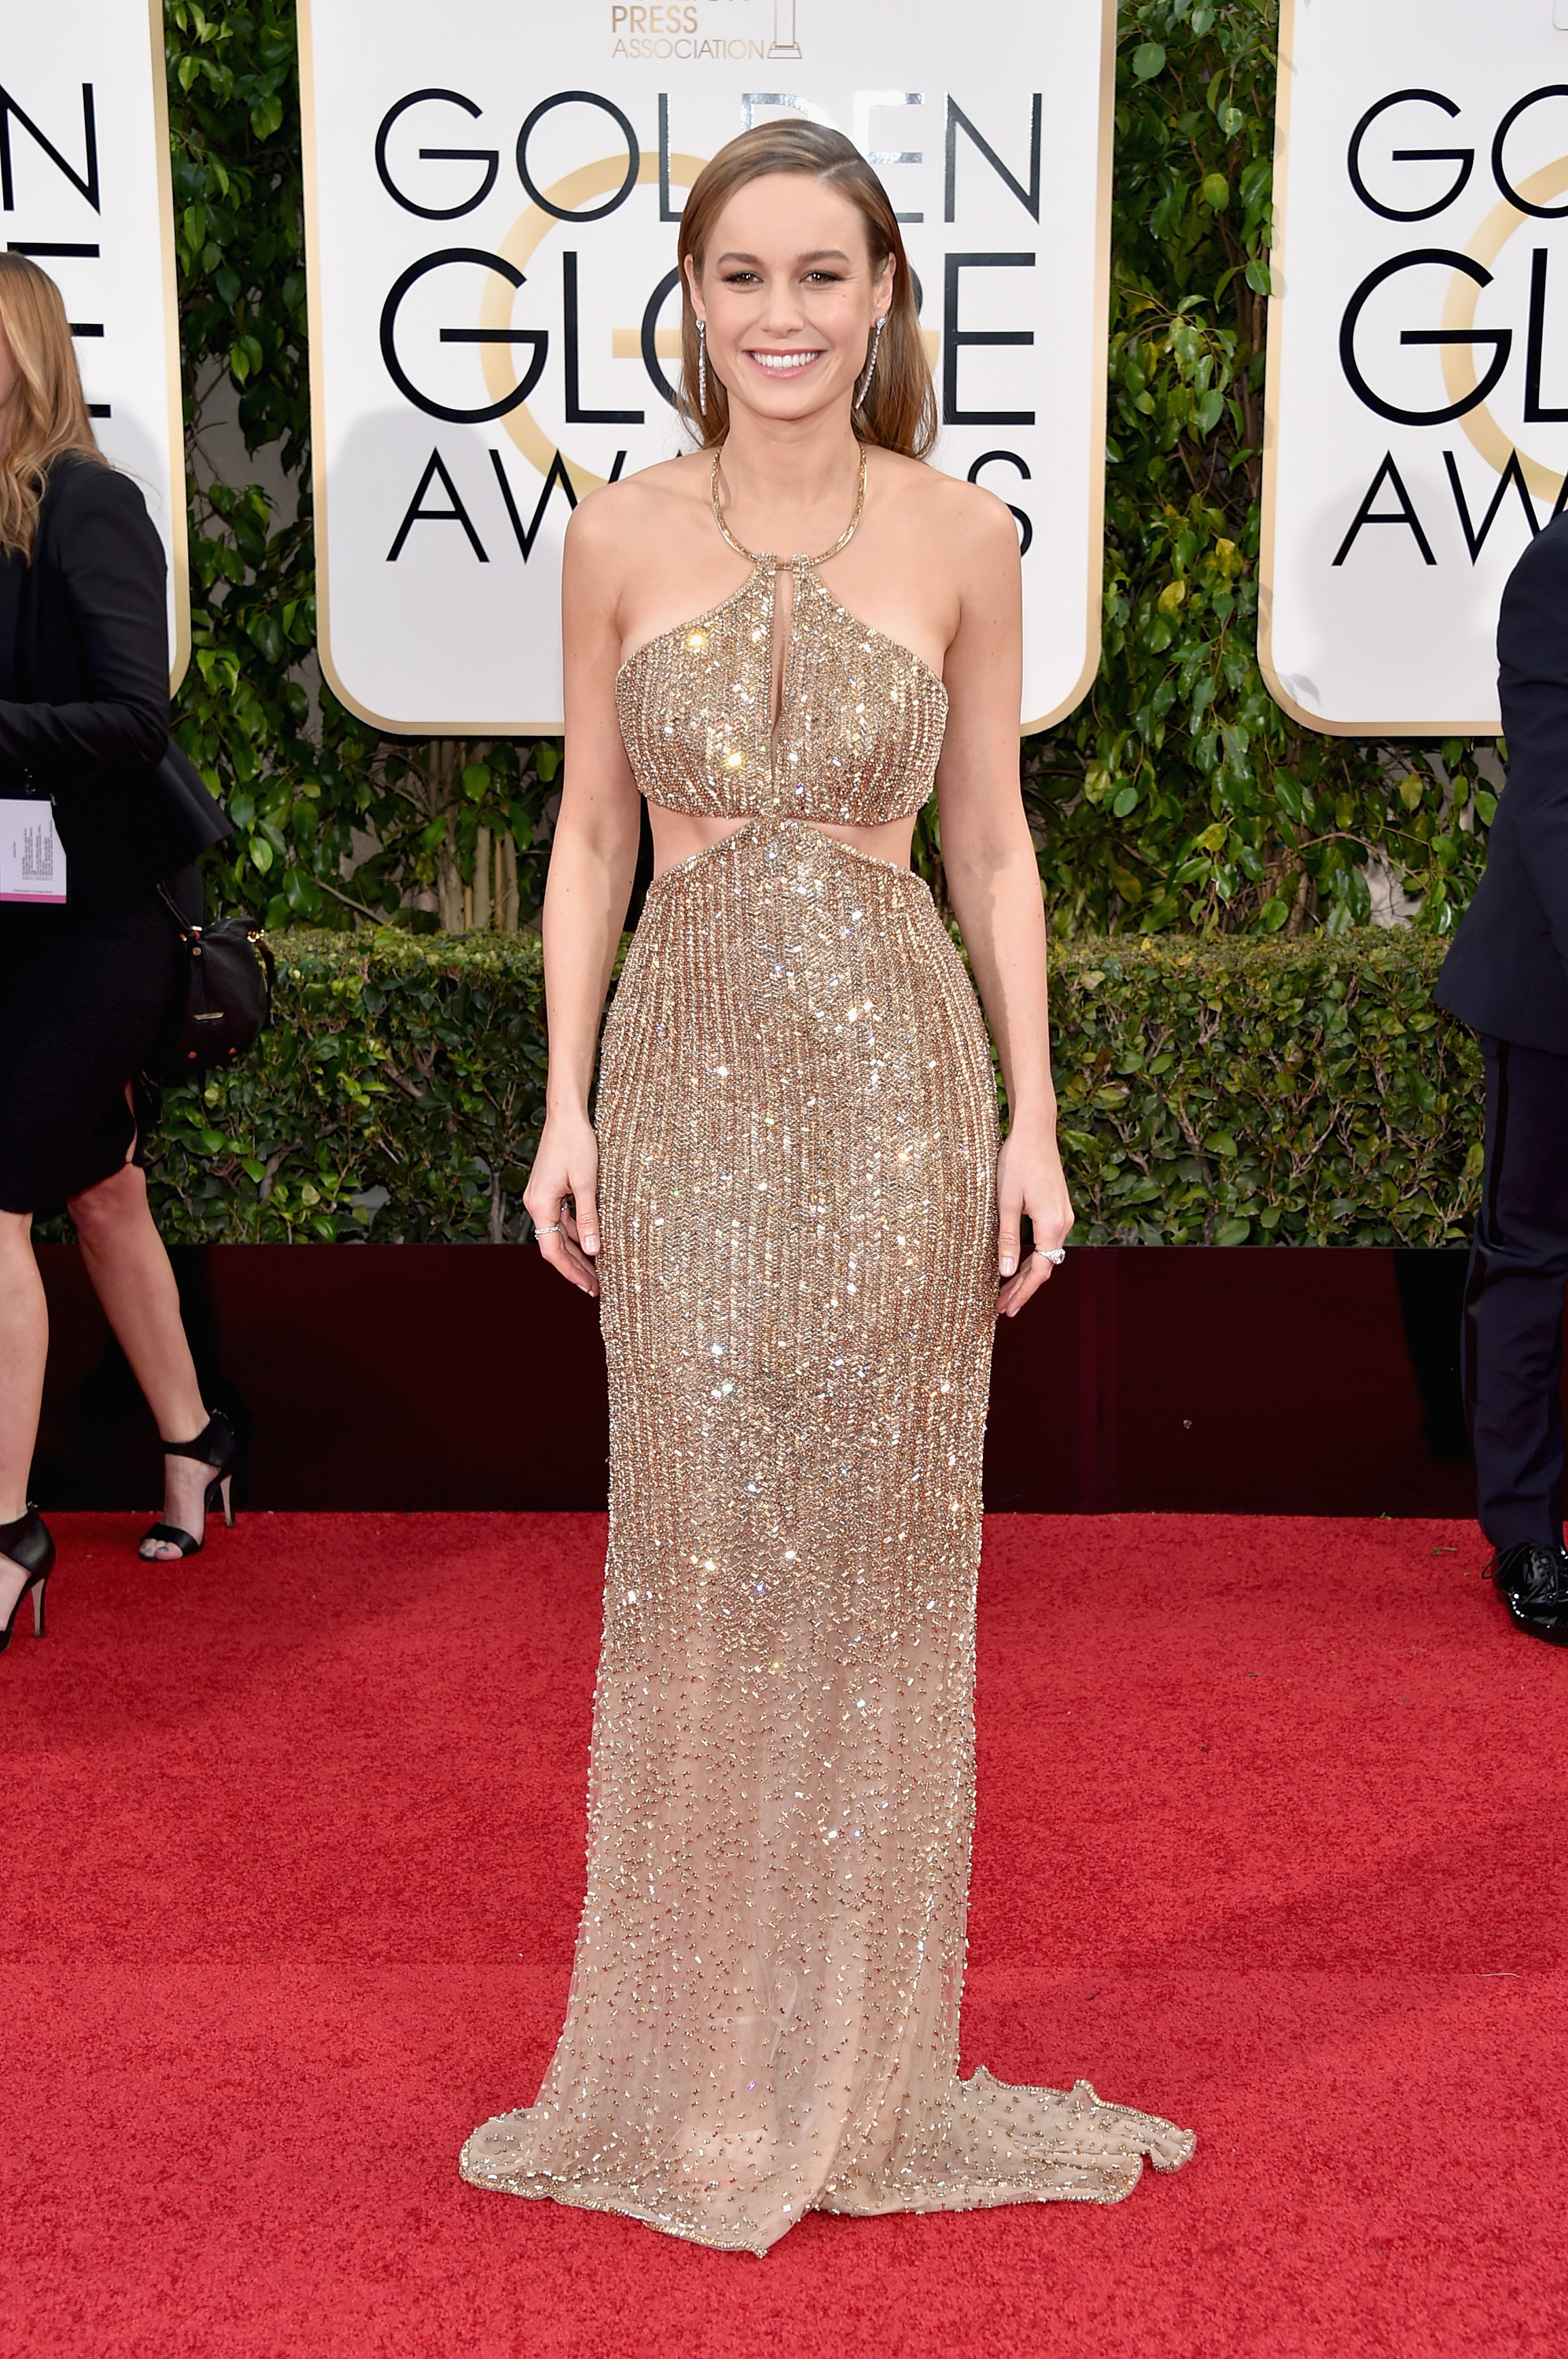 Brie Larson arrives to the 73rd Annual Golden Globe Awards on Jan. 10, 2016 in Beverly Hills.